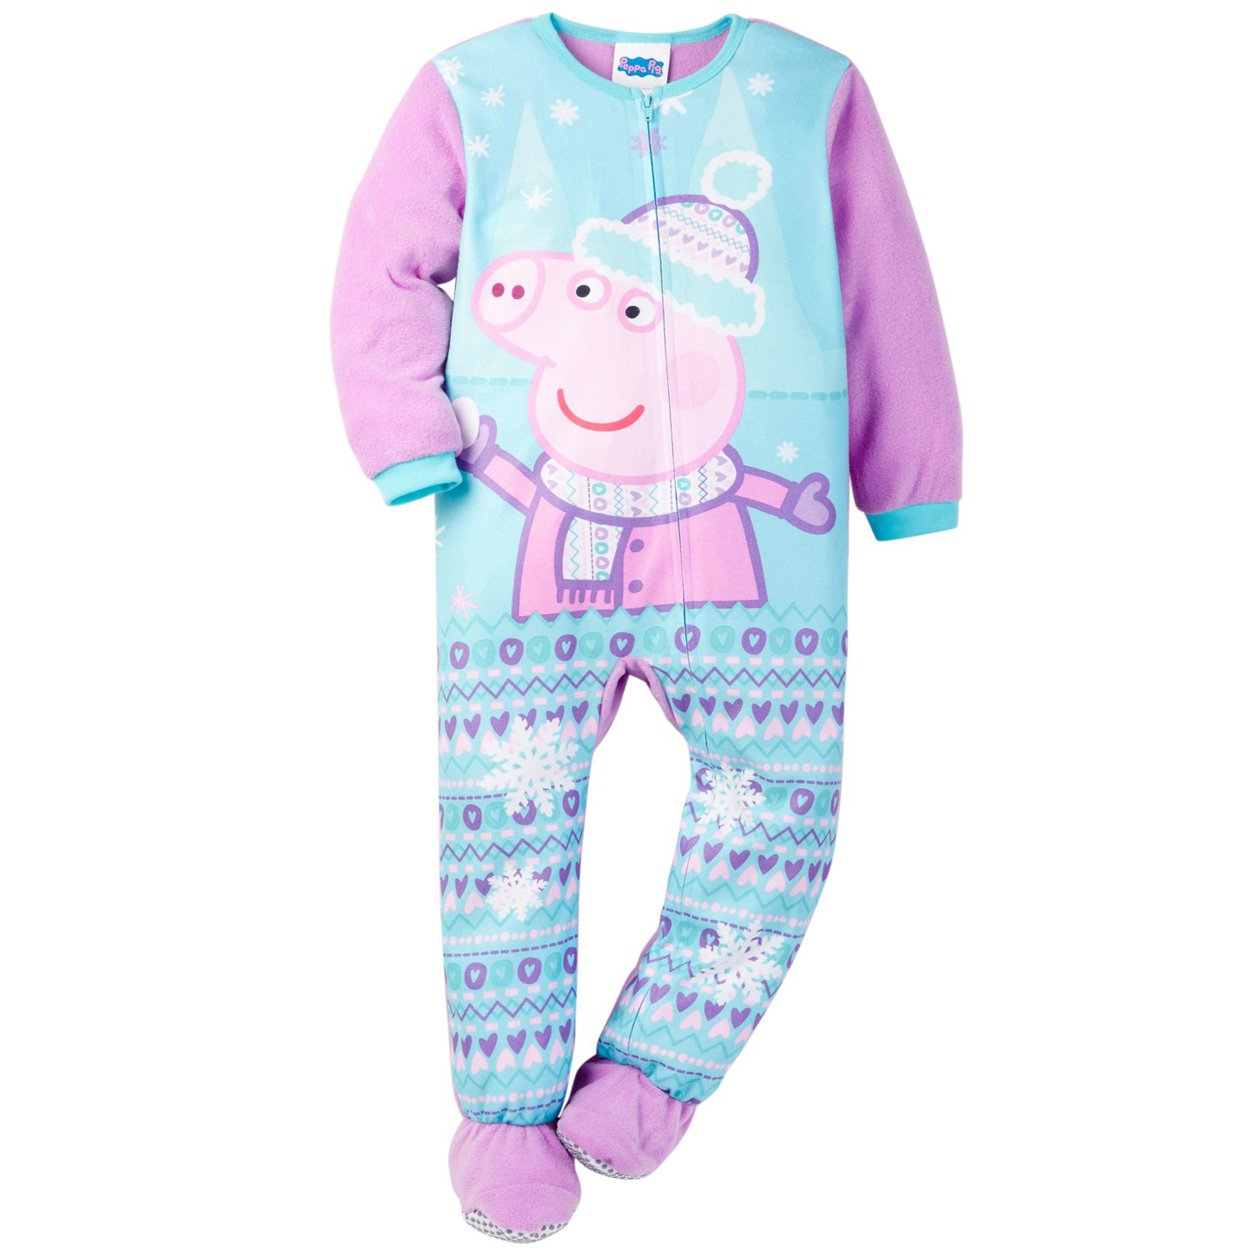 Komar Kids Peppa Pig Girls Fleece Blanket Sleeper Pajamas (Toddler) K182822PP